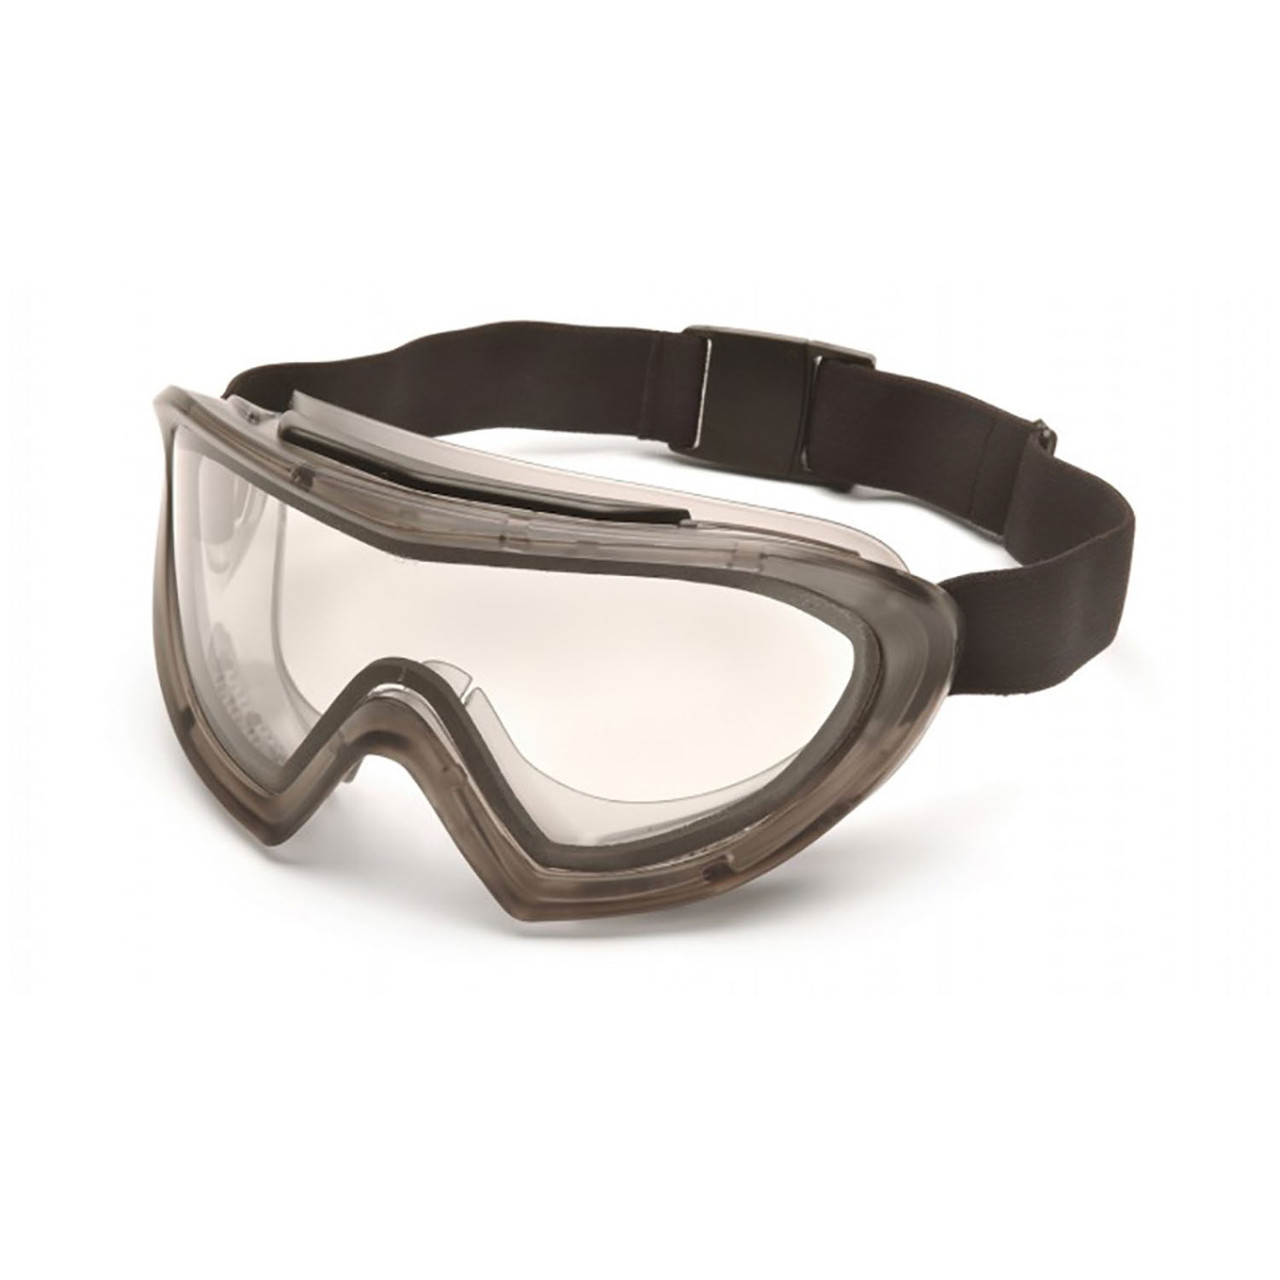 Pyramex Capstone Series - Direct/Indirect Goggle with Clear H2MAX Anti-Fog Lens